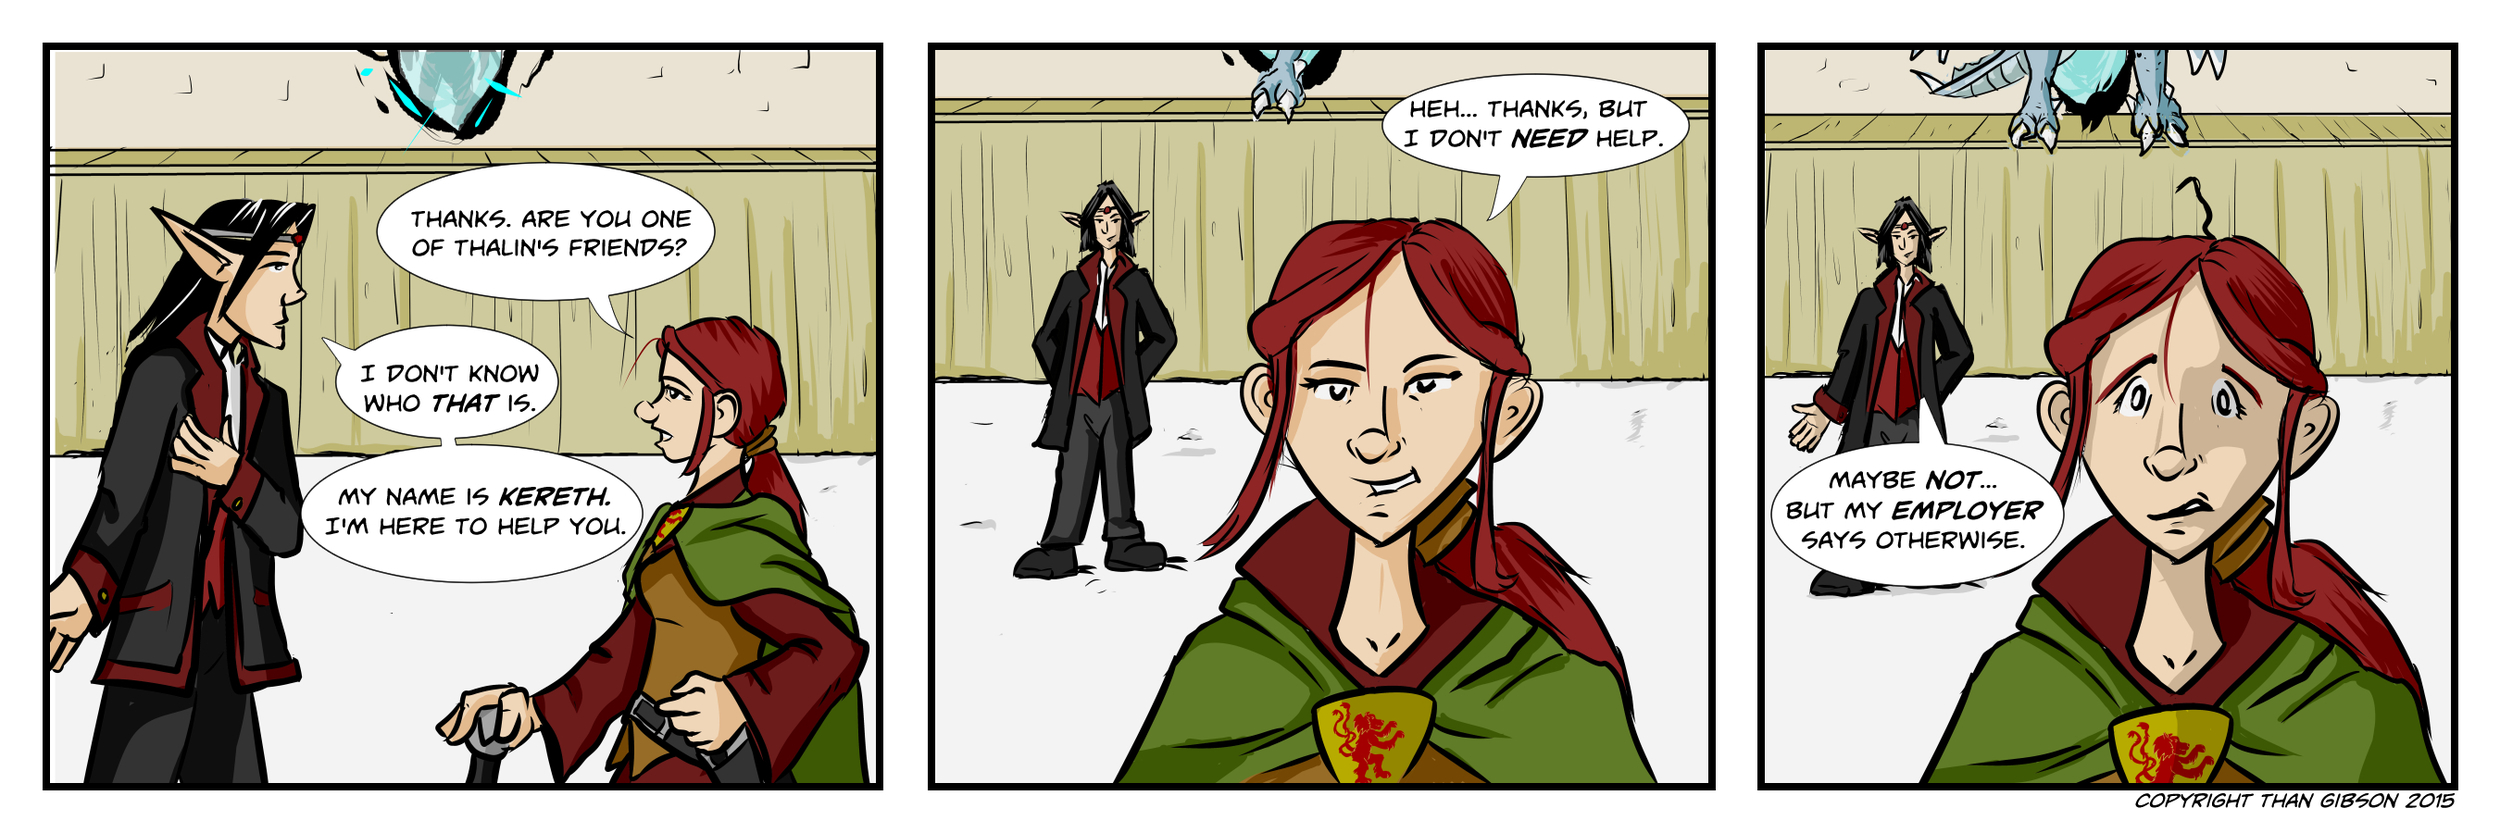 A Chronicle of Thieves -Chapter 2, Strip 21